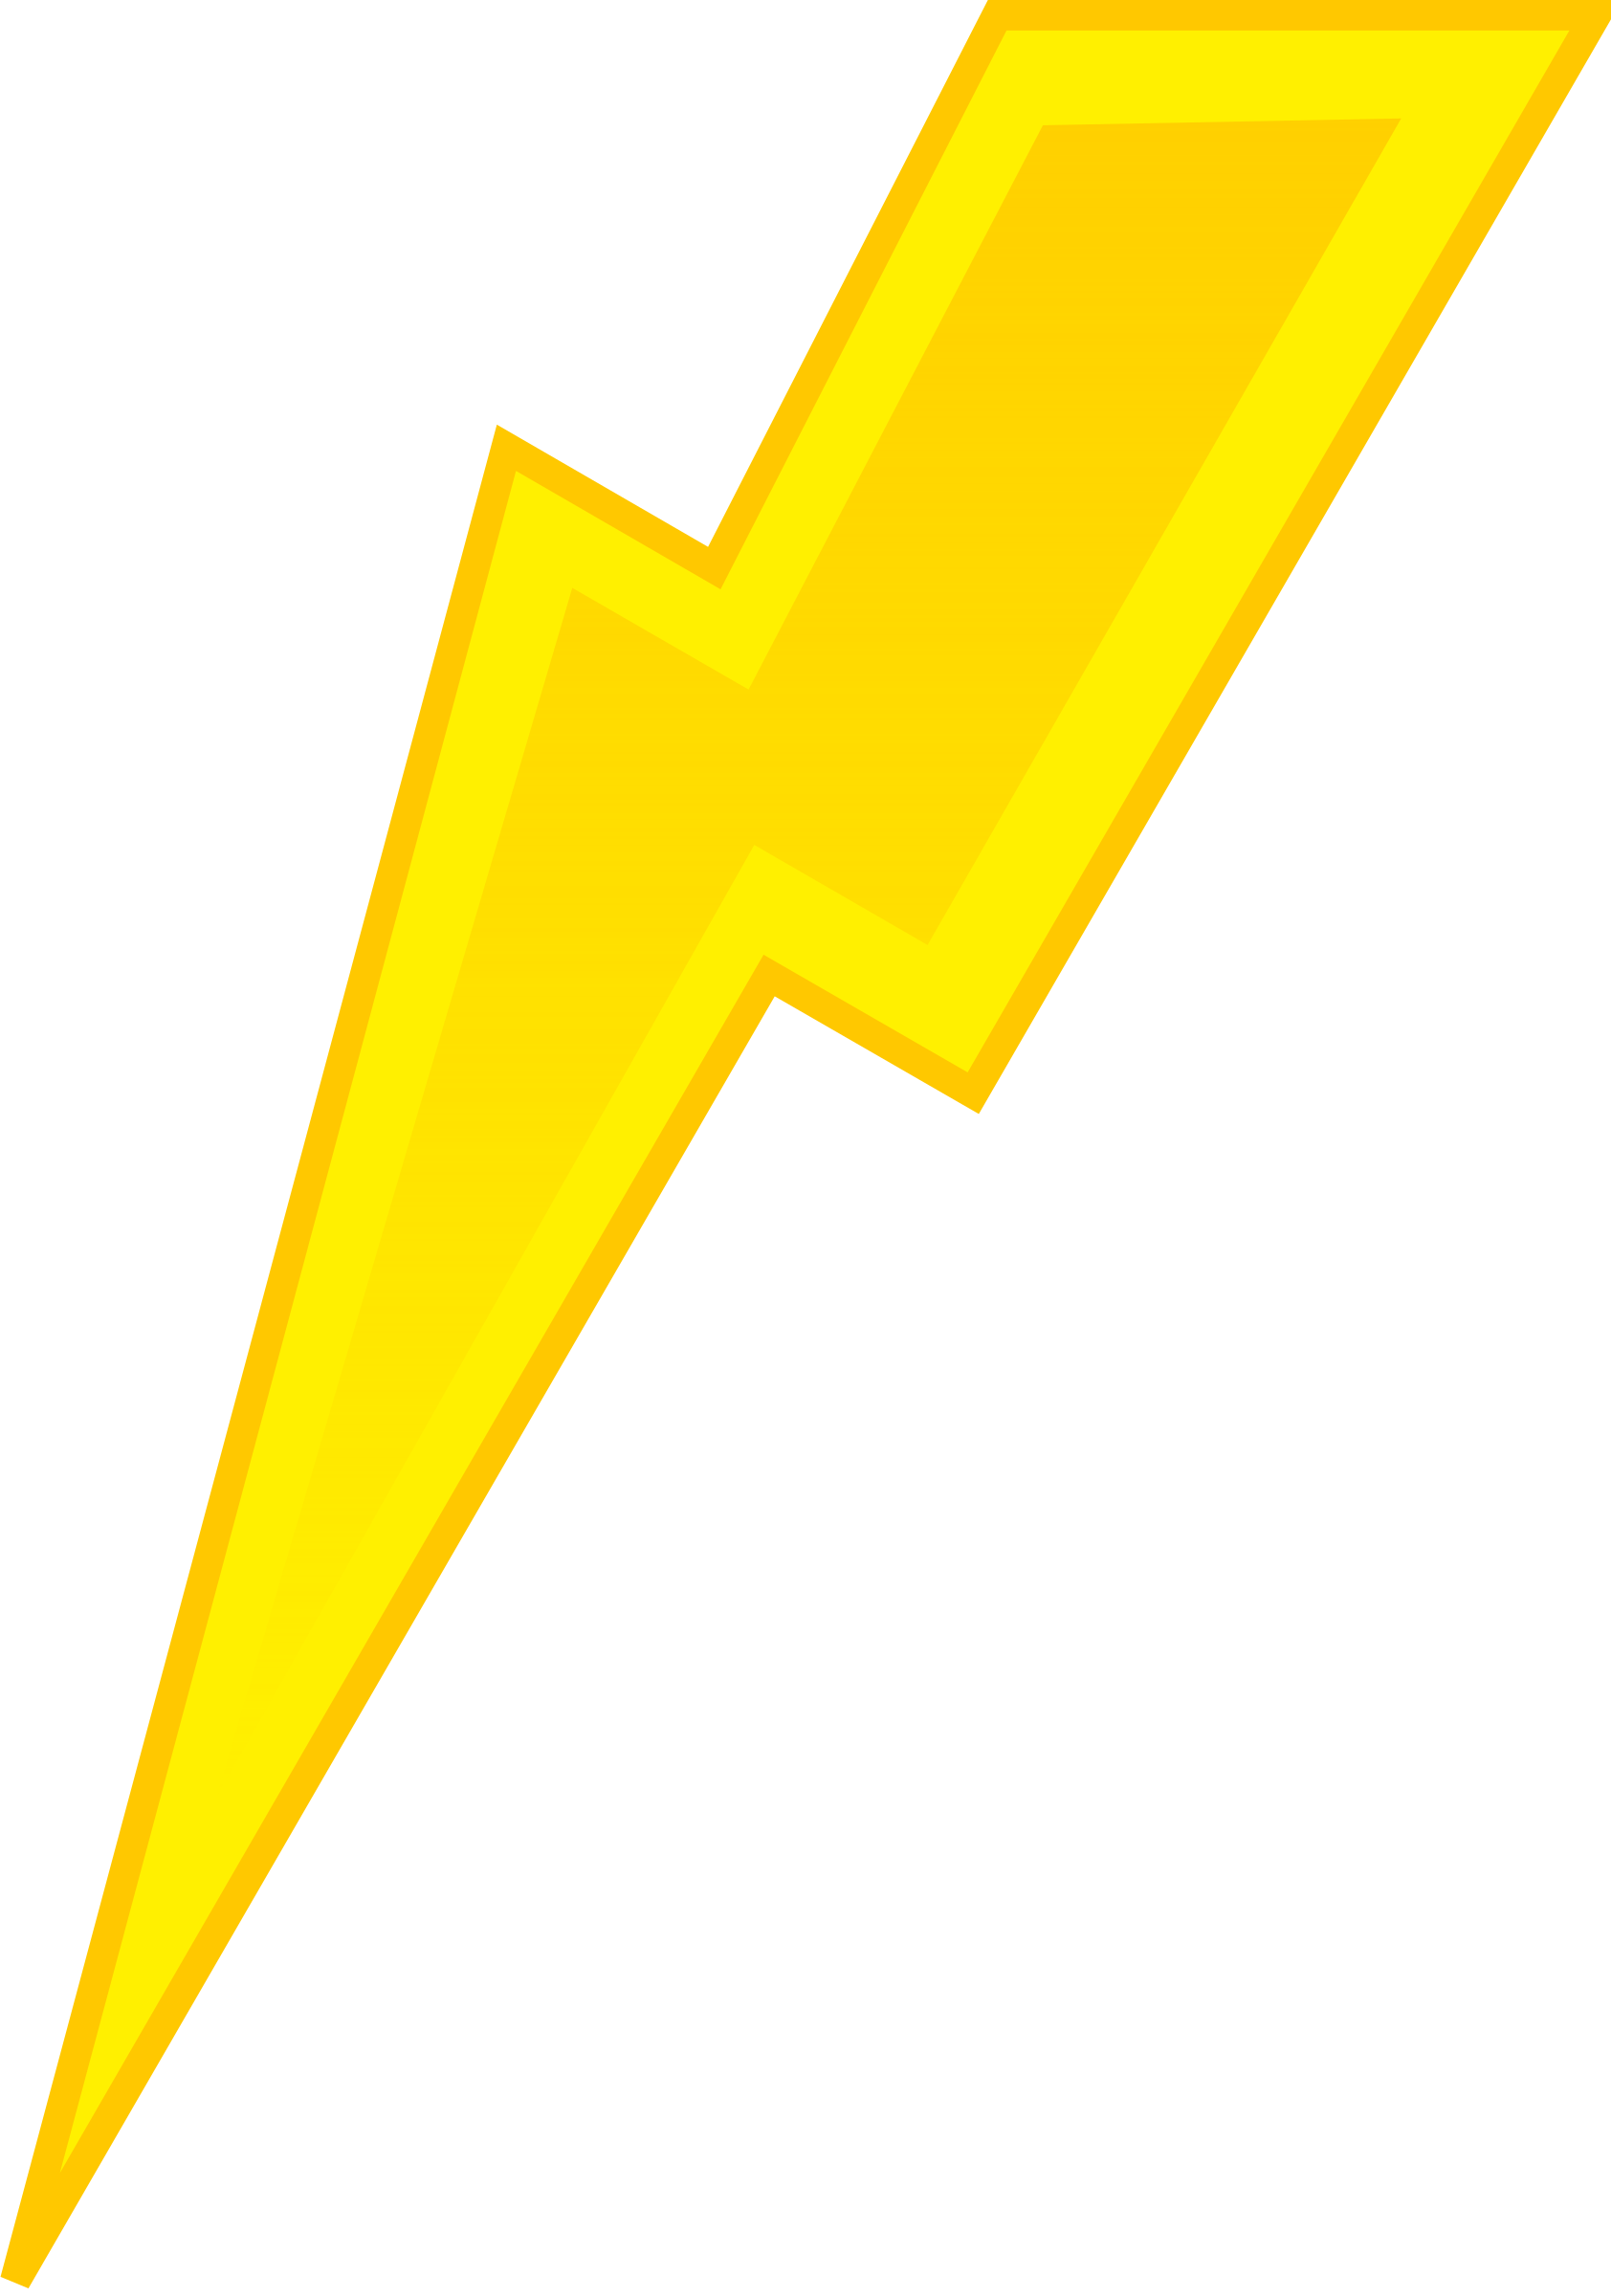 Cartoon lightning png. Clipart big image